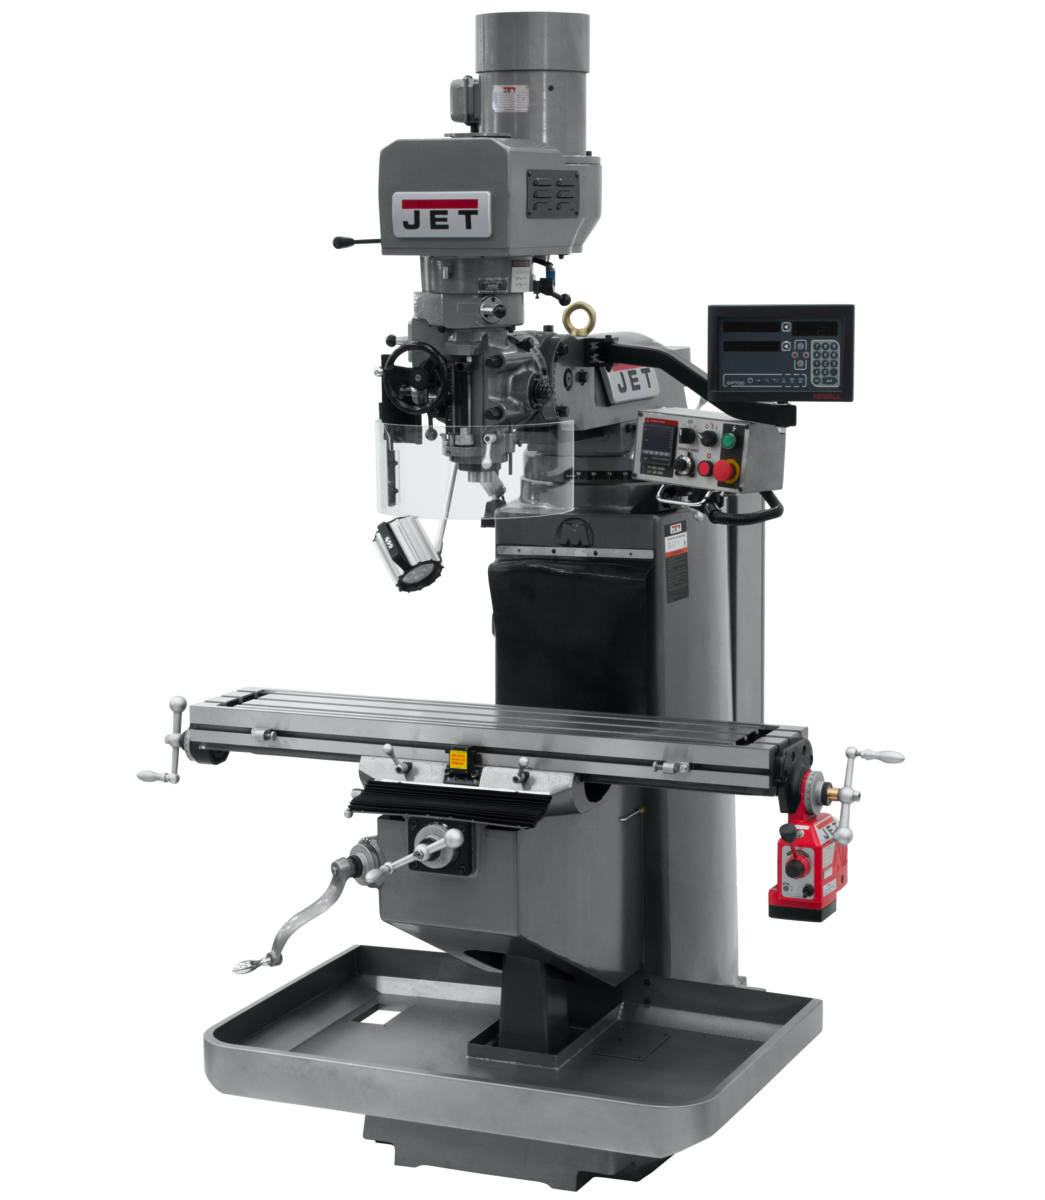 JTM-949EVS Mill With 3-Axis Newall DP700 DRO (Knee) With X-Axis Powerfeed